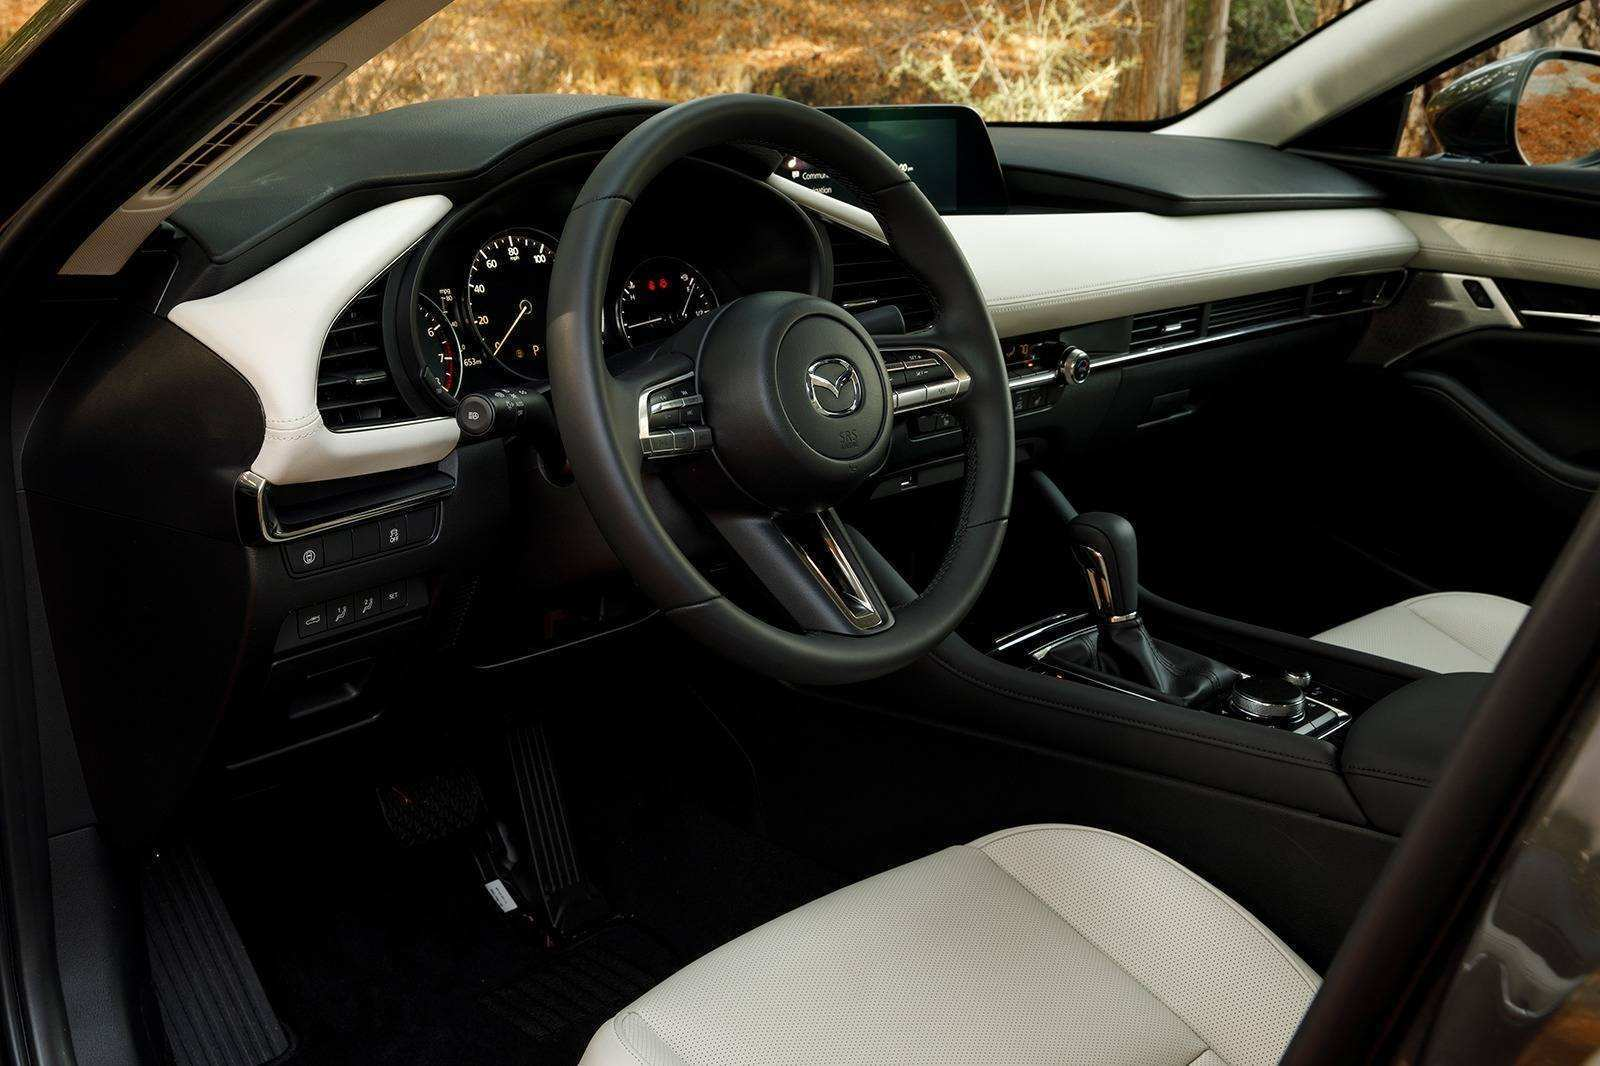 53 Great Mazda 3 2019 Interior Exterior by Mazda 3 2019 Interior